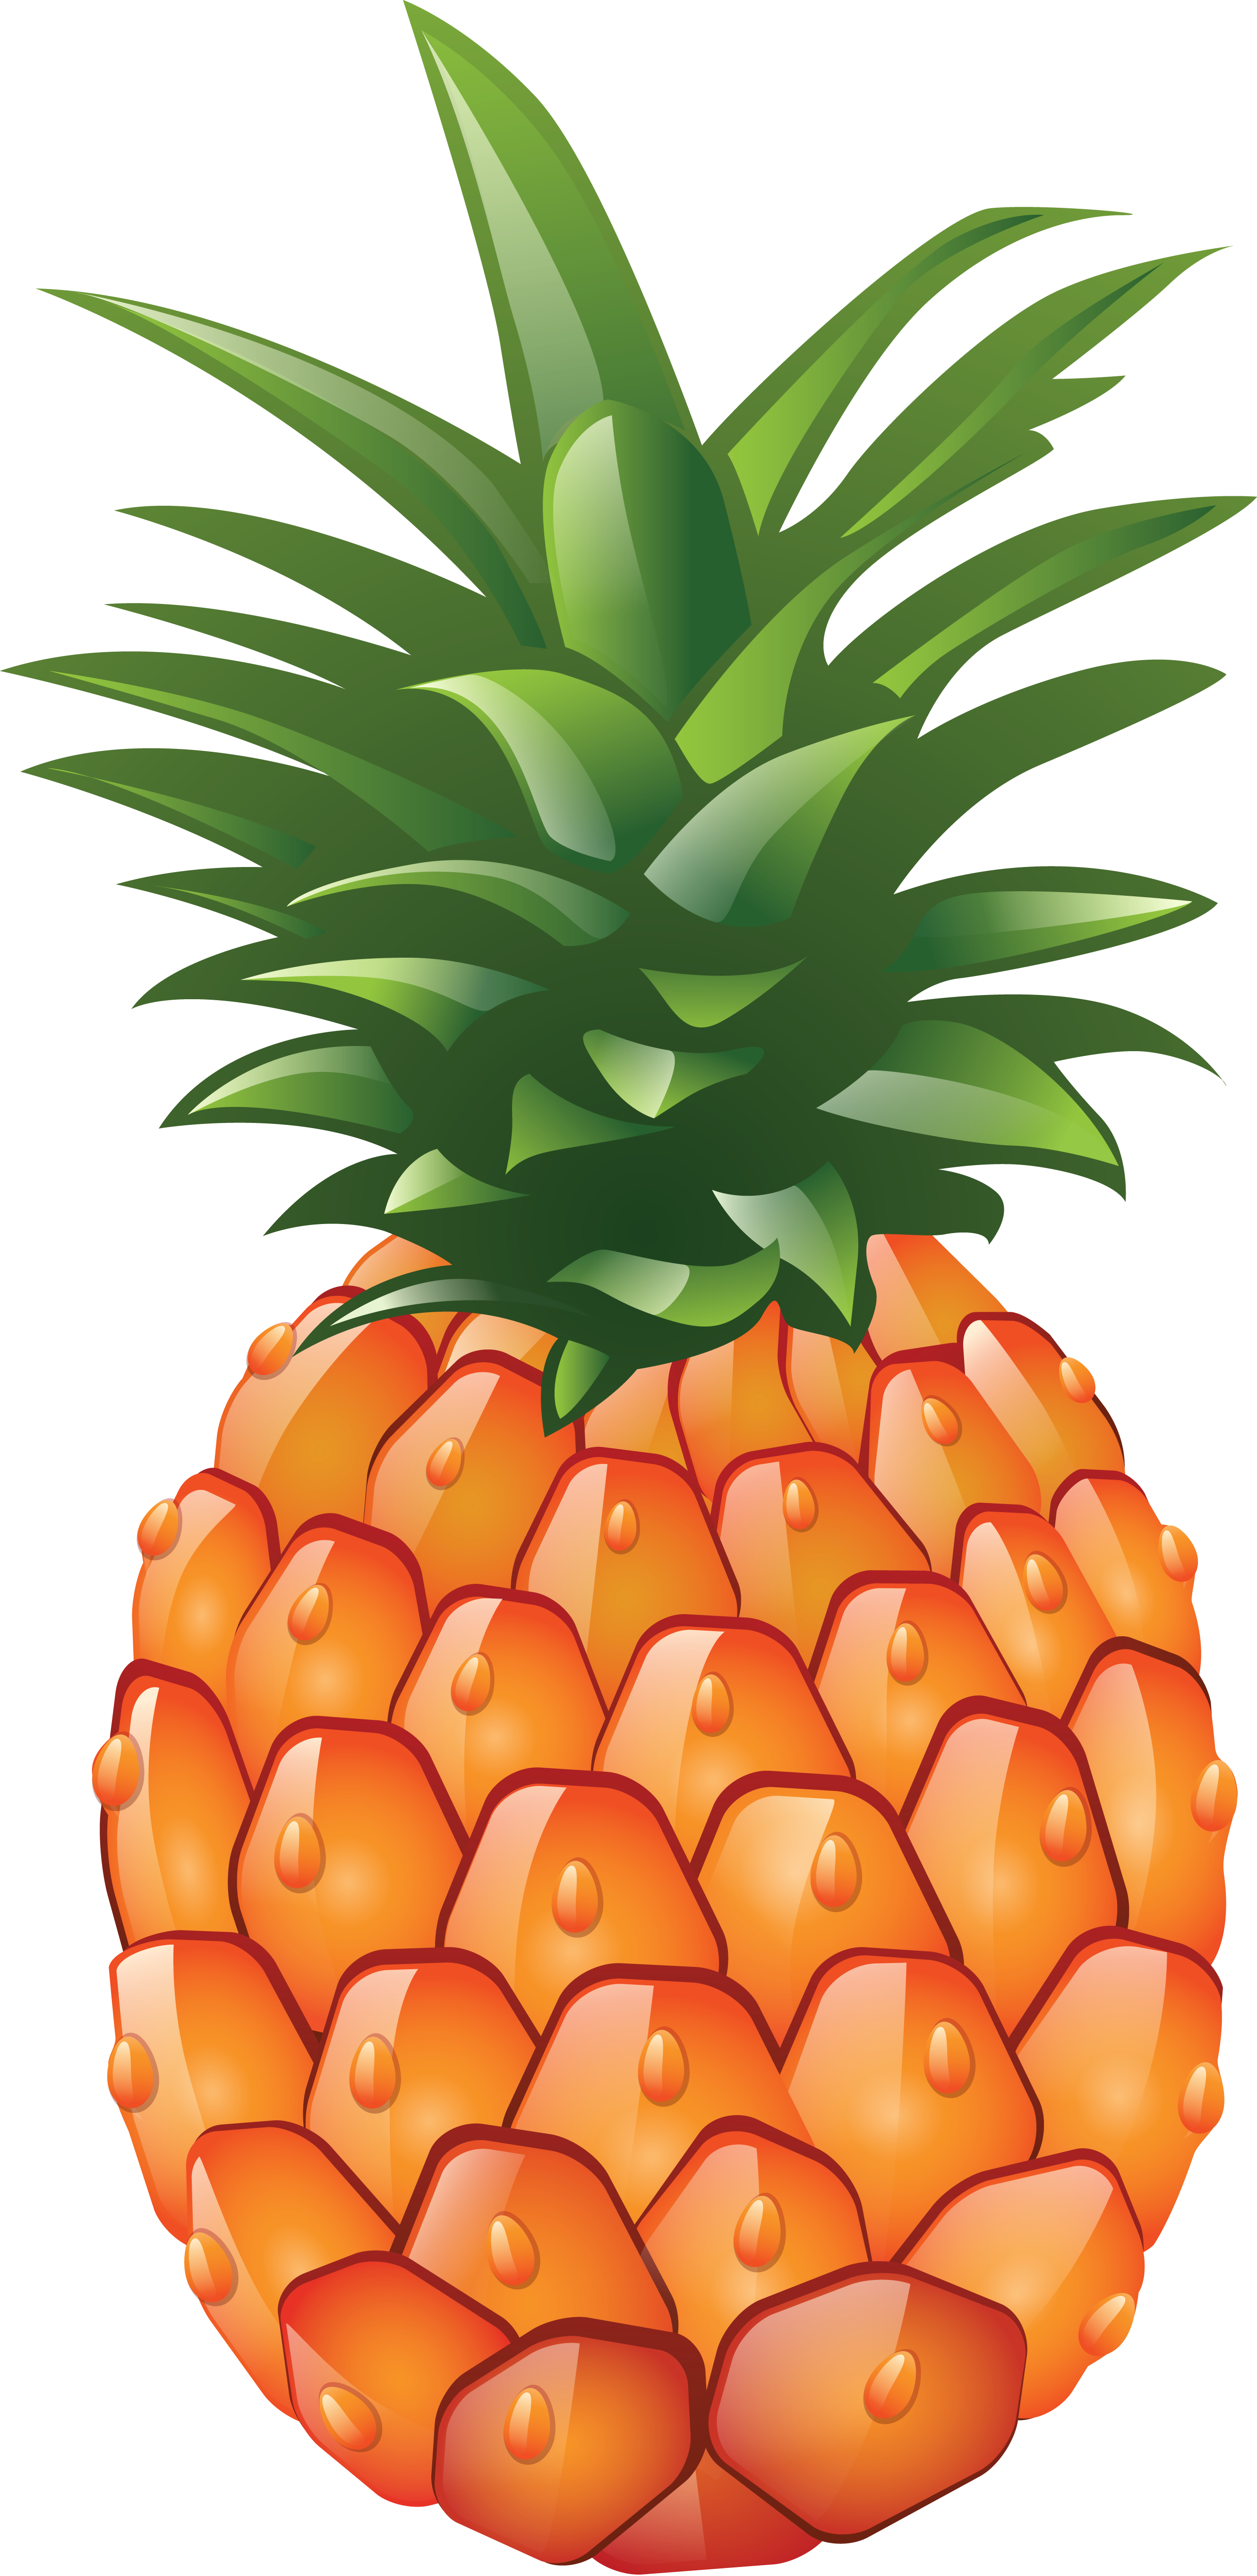 Pinapple png image purepng. Pear clipart pineapple